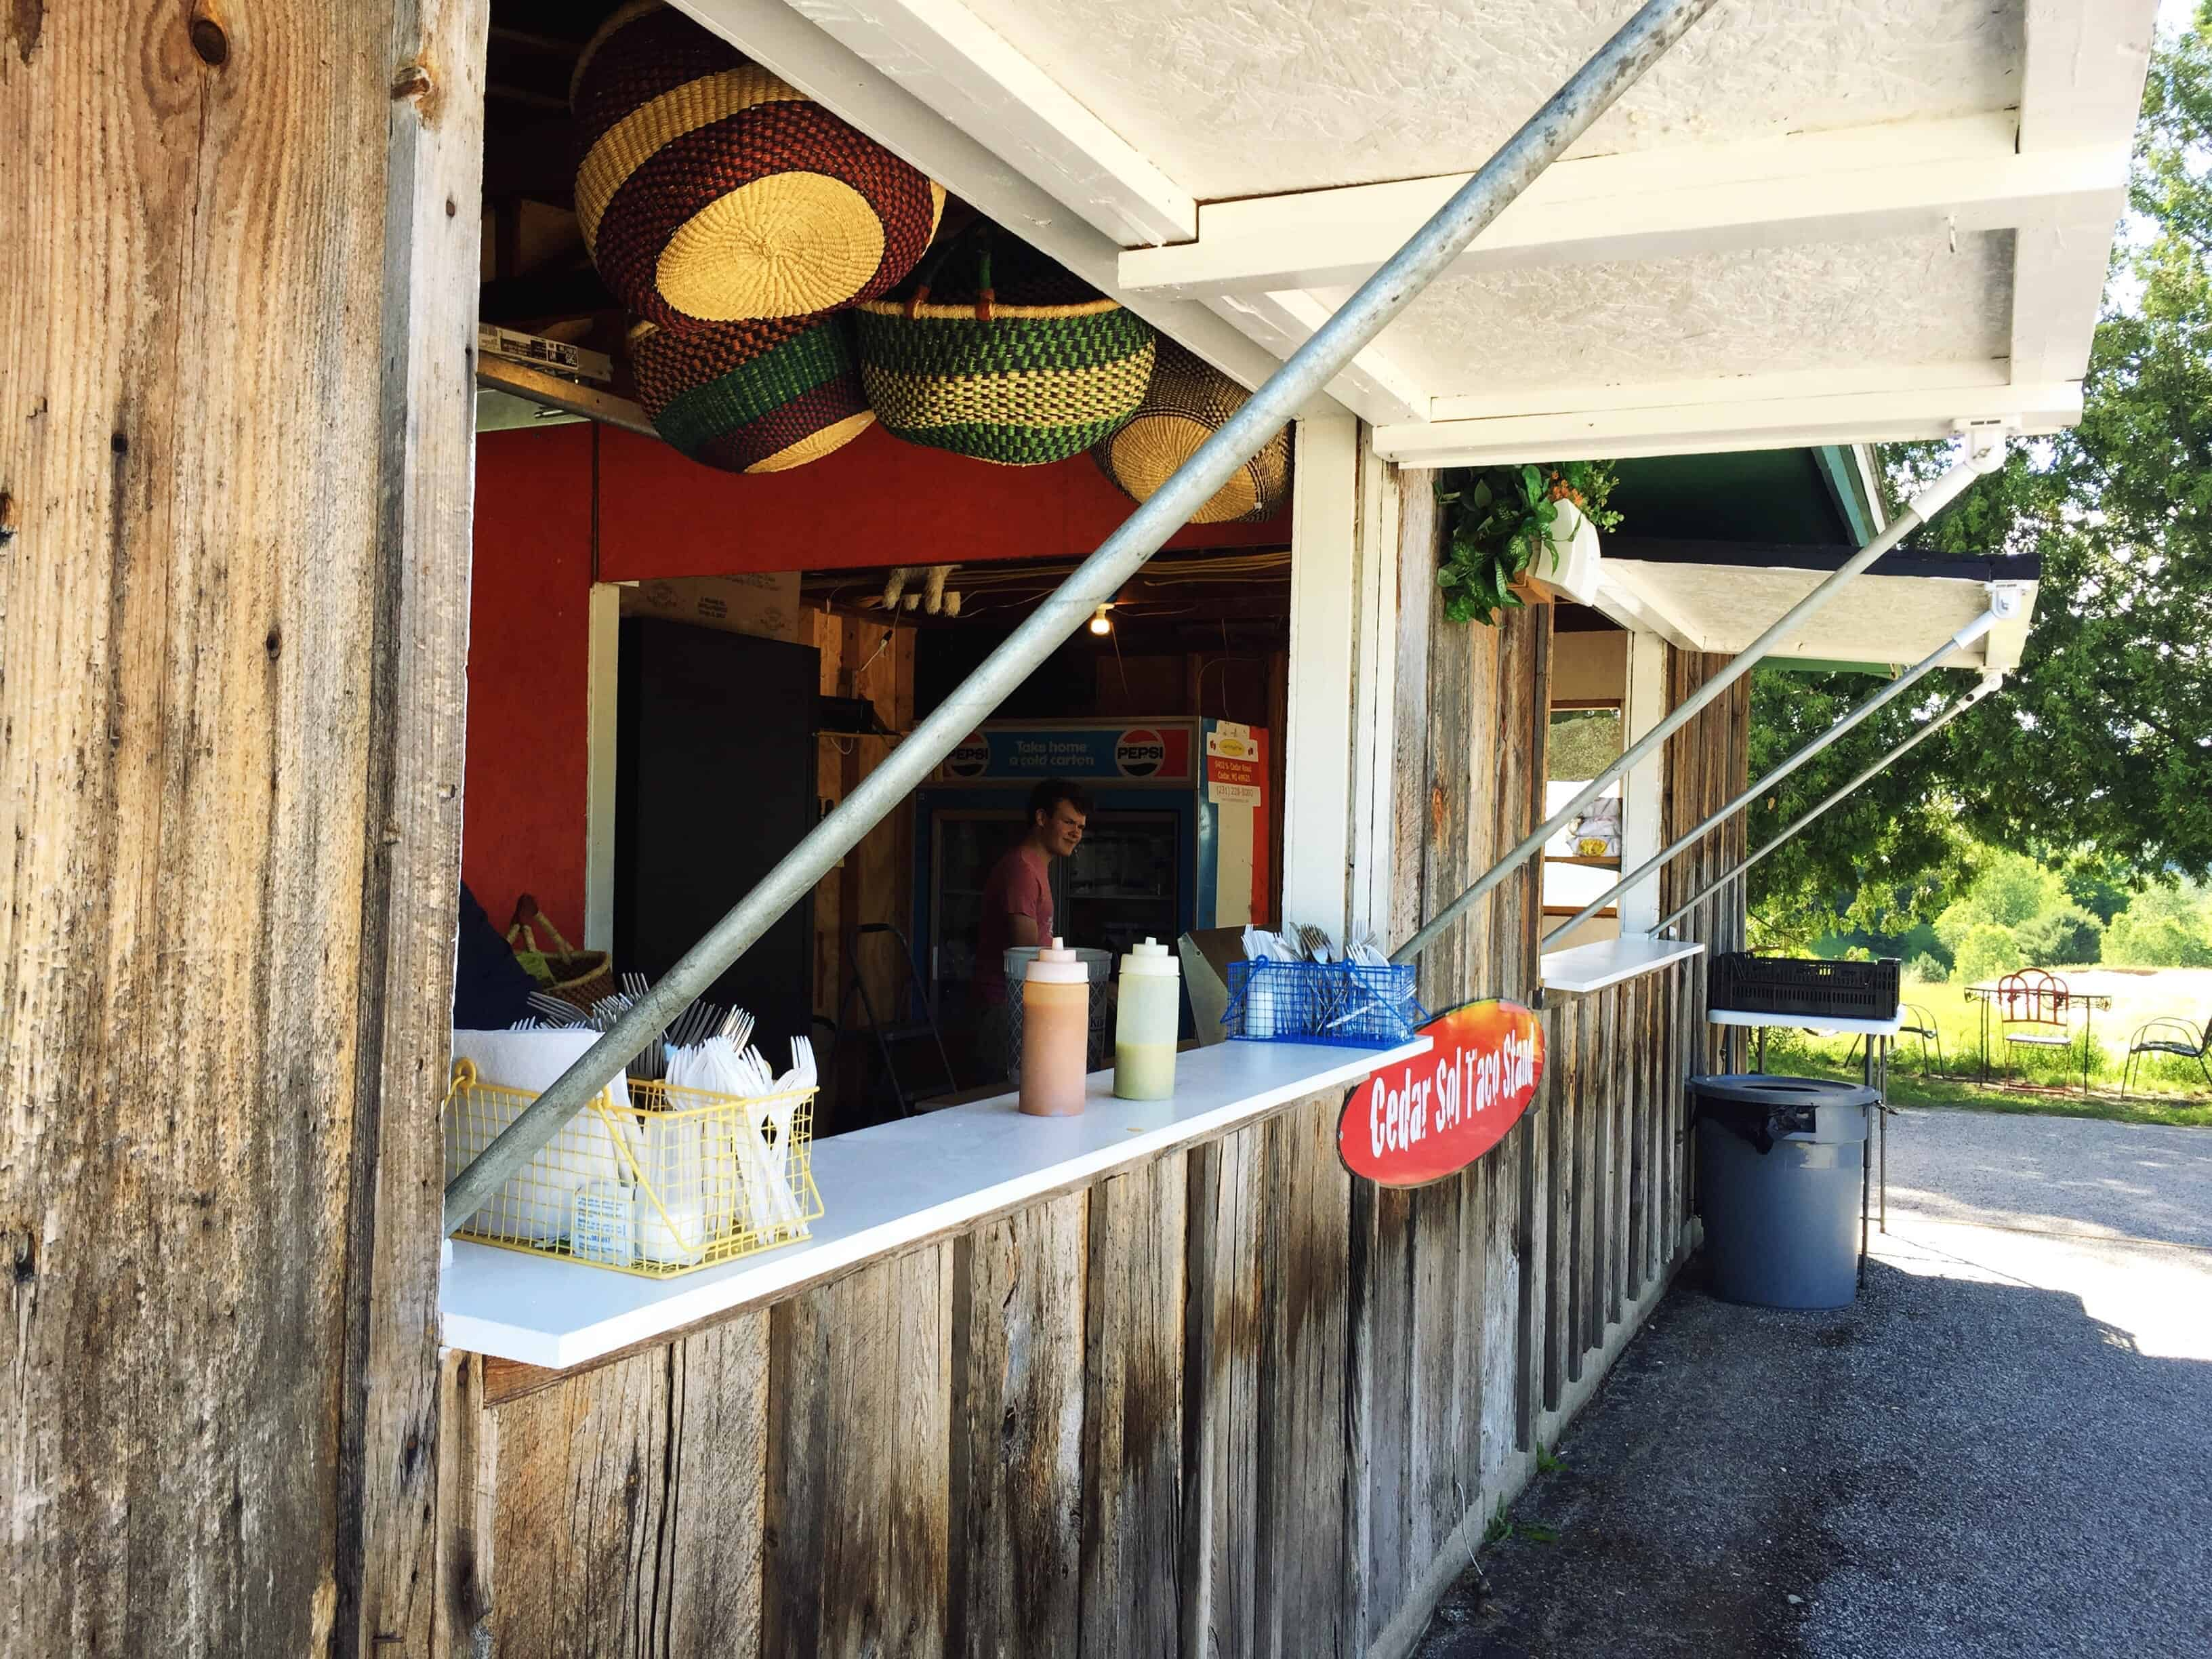 Tantalizing Tacos From A Roadside Stand In Northern Michigan - The Awesome Mitten